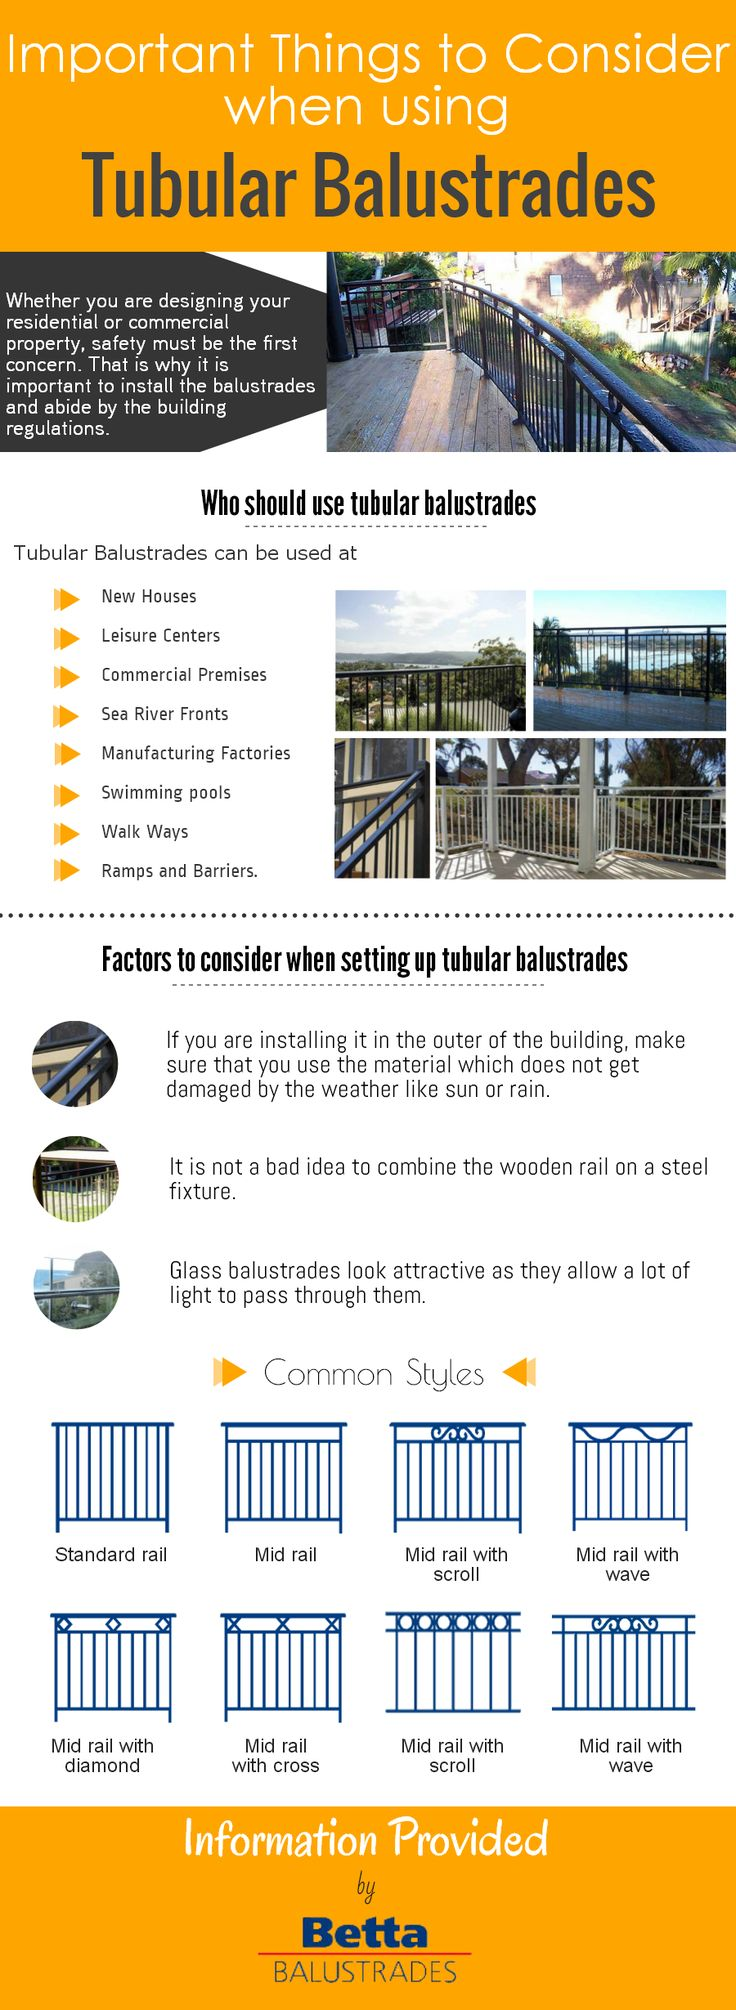 While choosing tubular balustrades for your property, you need to take care of its design as well as security. There are a wide variety of balustrades available providing different facilities. Go through this infographic to know about the things to consider while using them.